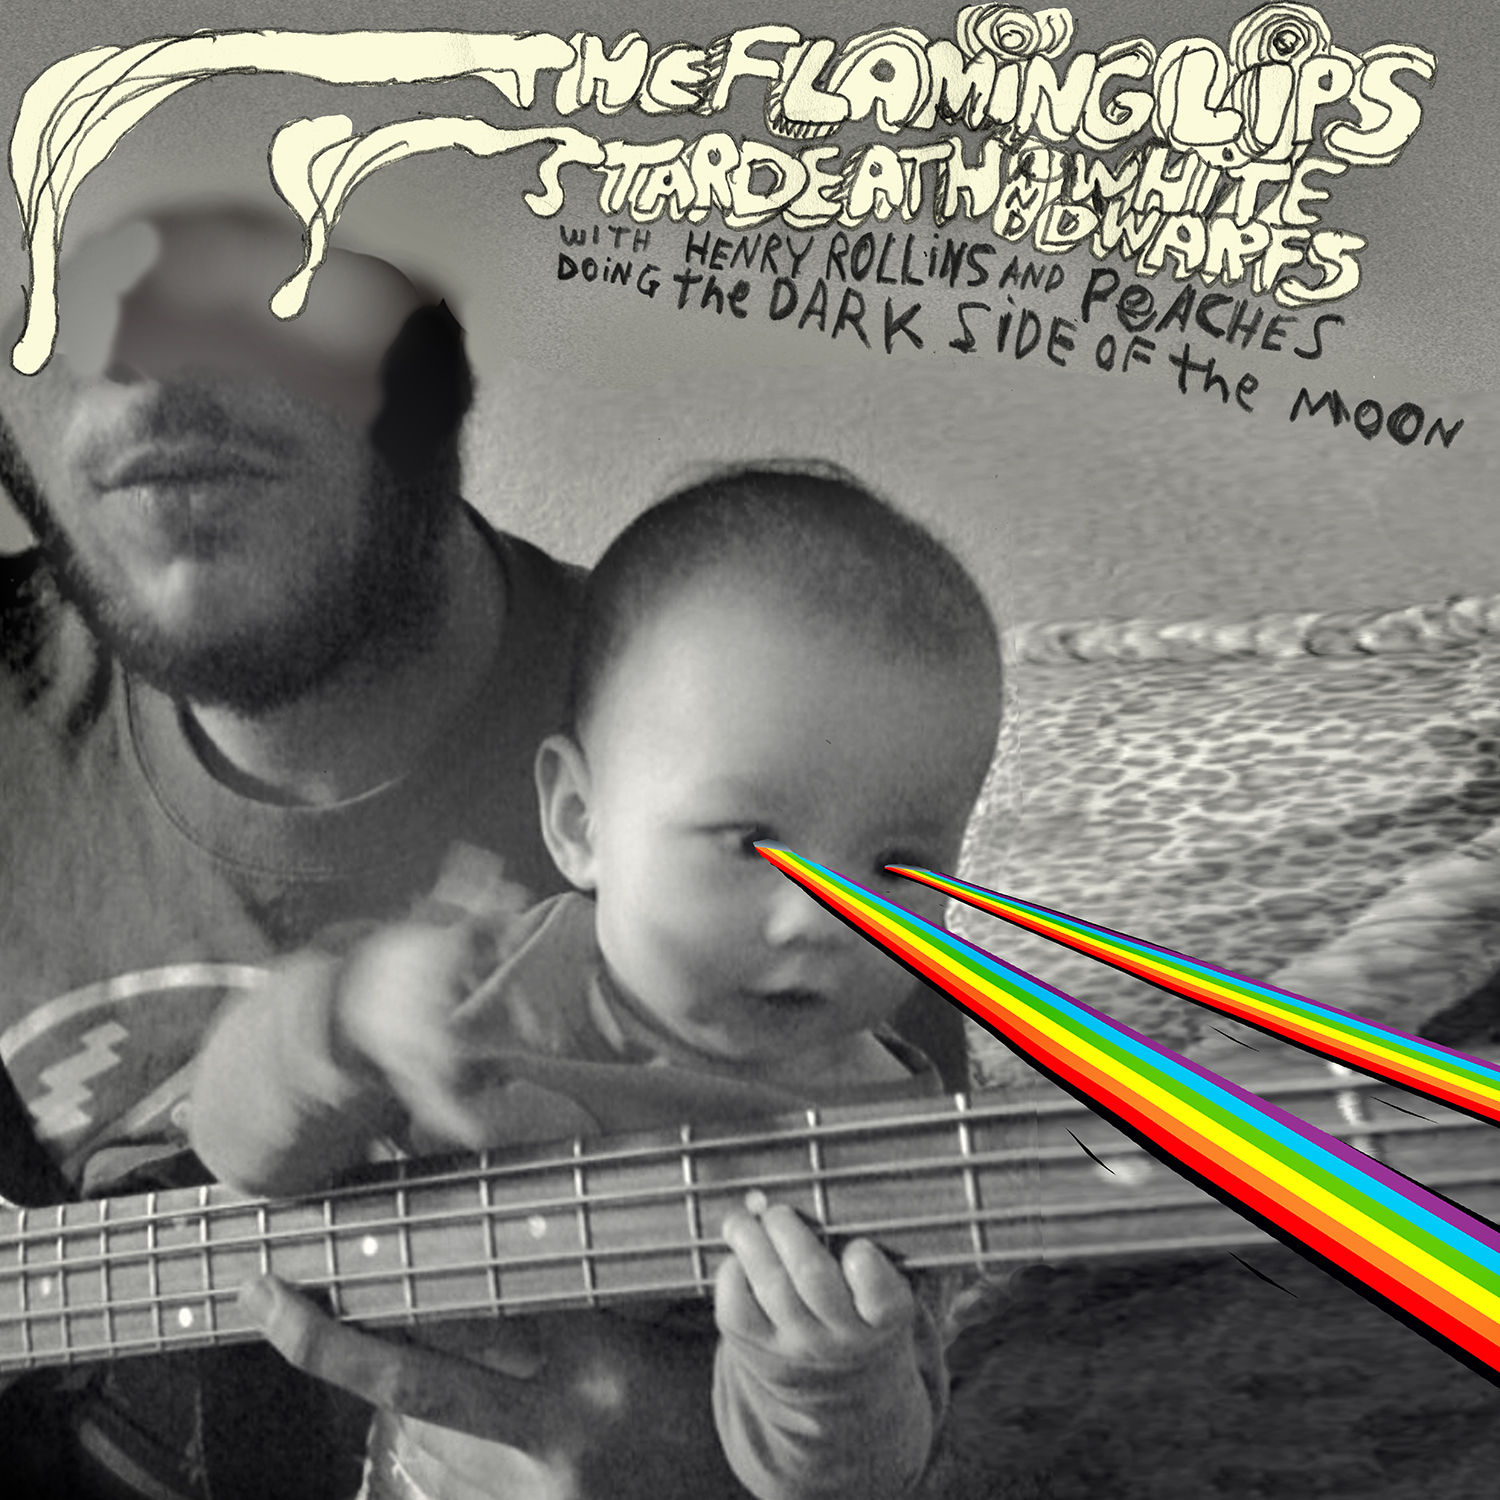 the-flaming-lips-and-stardeath-and-white-dwarfs-with-henry-rollins-and-peaches-doing-the-dark-side-of-the-moon-extralarge_1307727234557